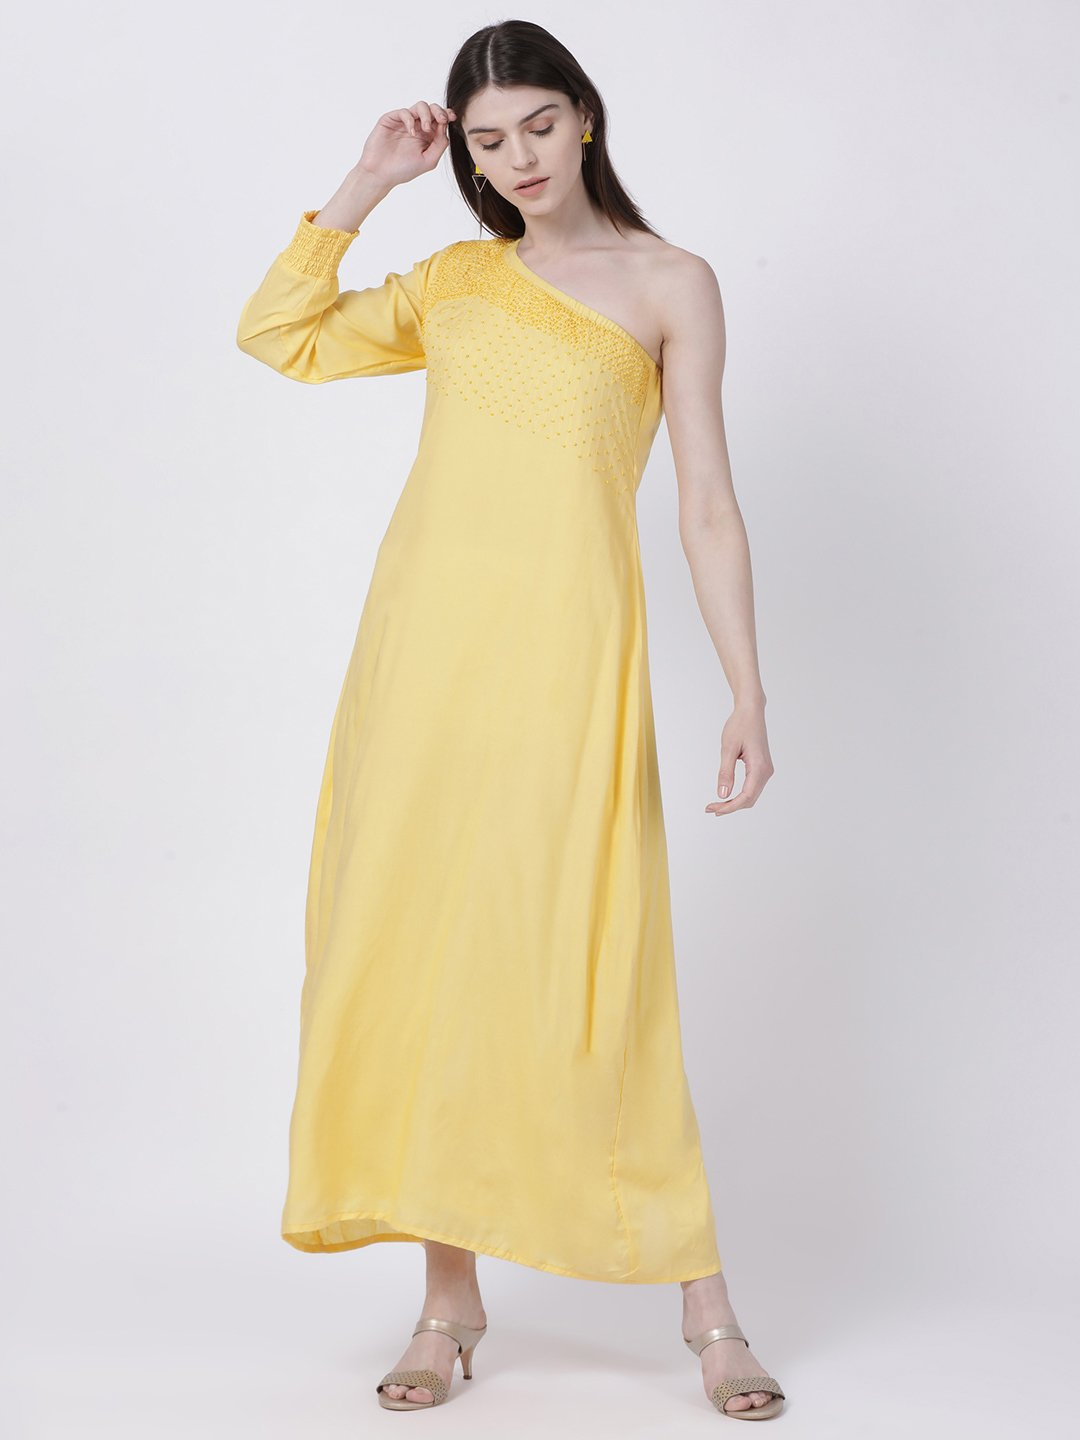 ONE SHOULDER YELLOW DRESS WITH EMBELLISHED NECKLINE - Rossbelle